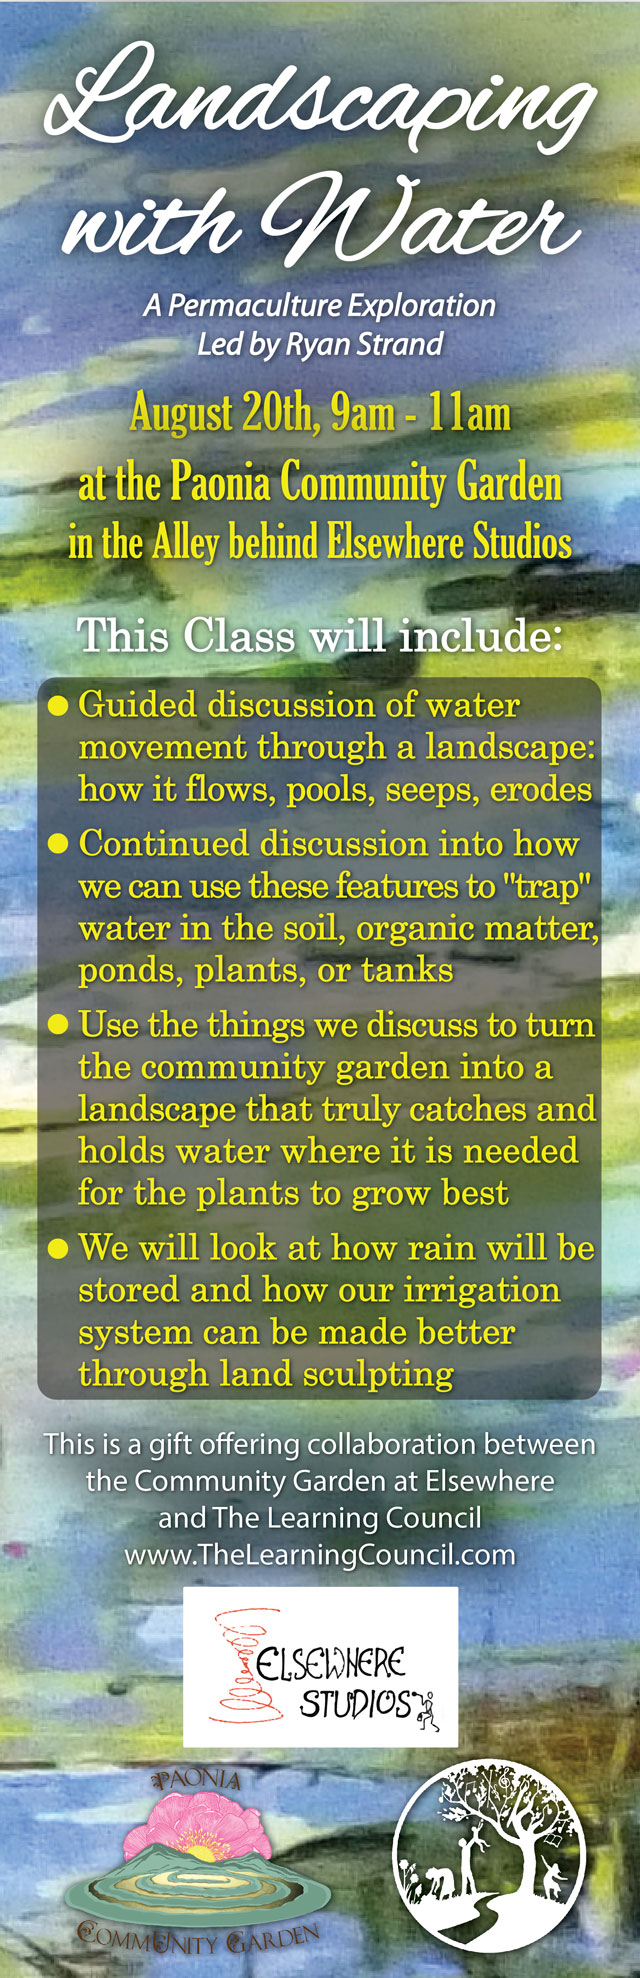 Landscaping with Water poster image